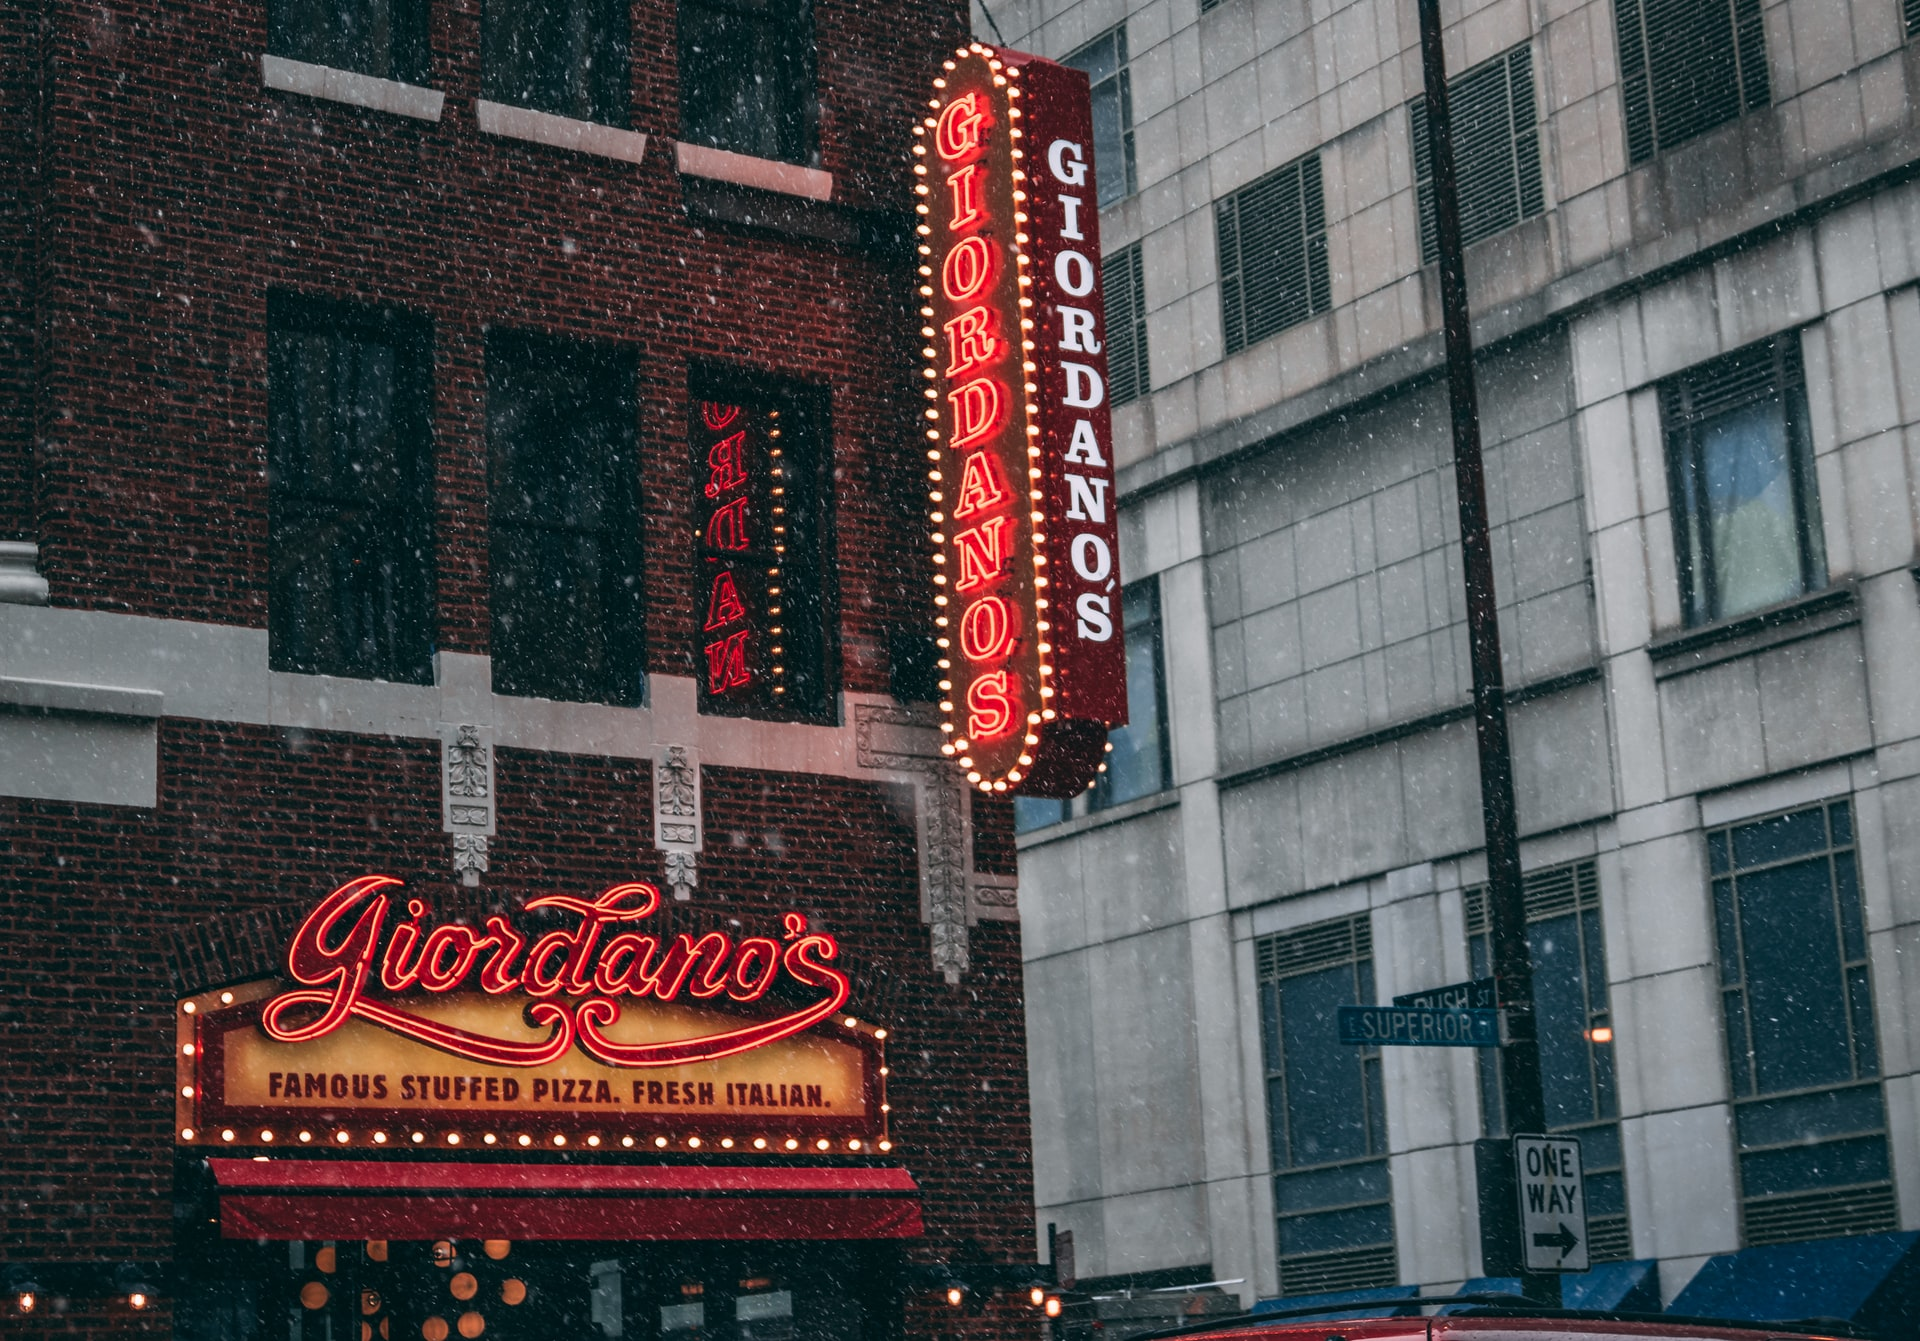 Lit up Giordano's signs at Giordano's restaurant on Superior and Rush in Chicago